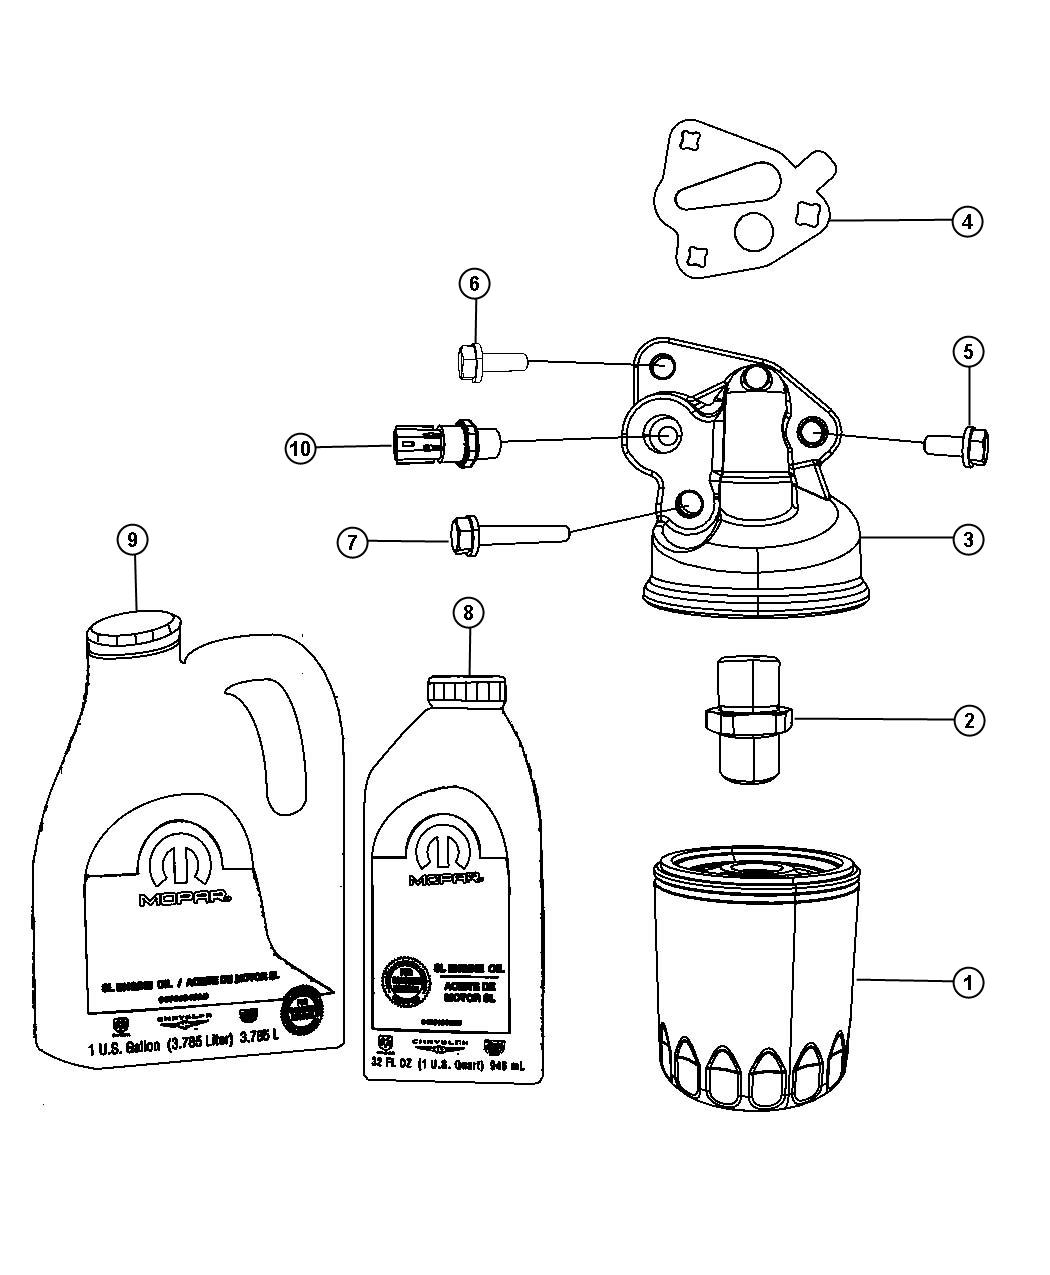 Chrysler Pacifica Adapter Oil Filter Includes Item